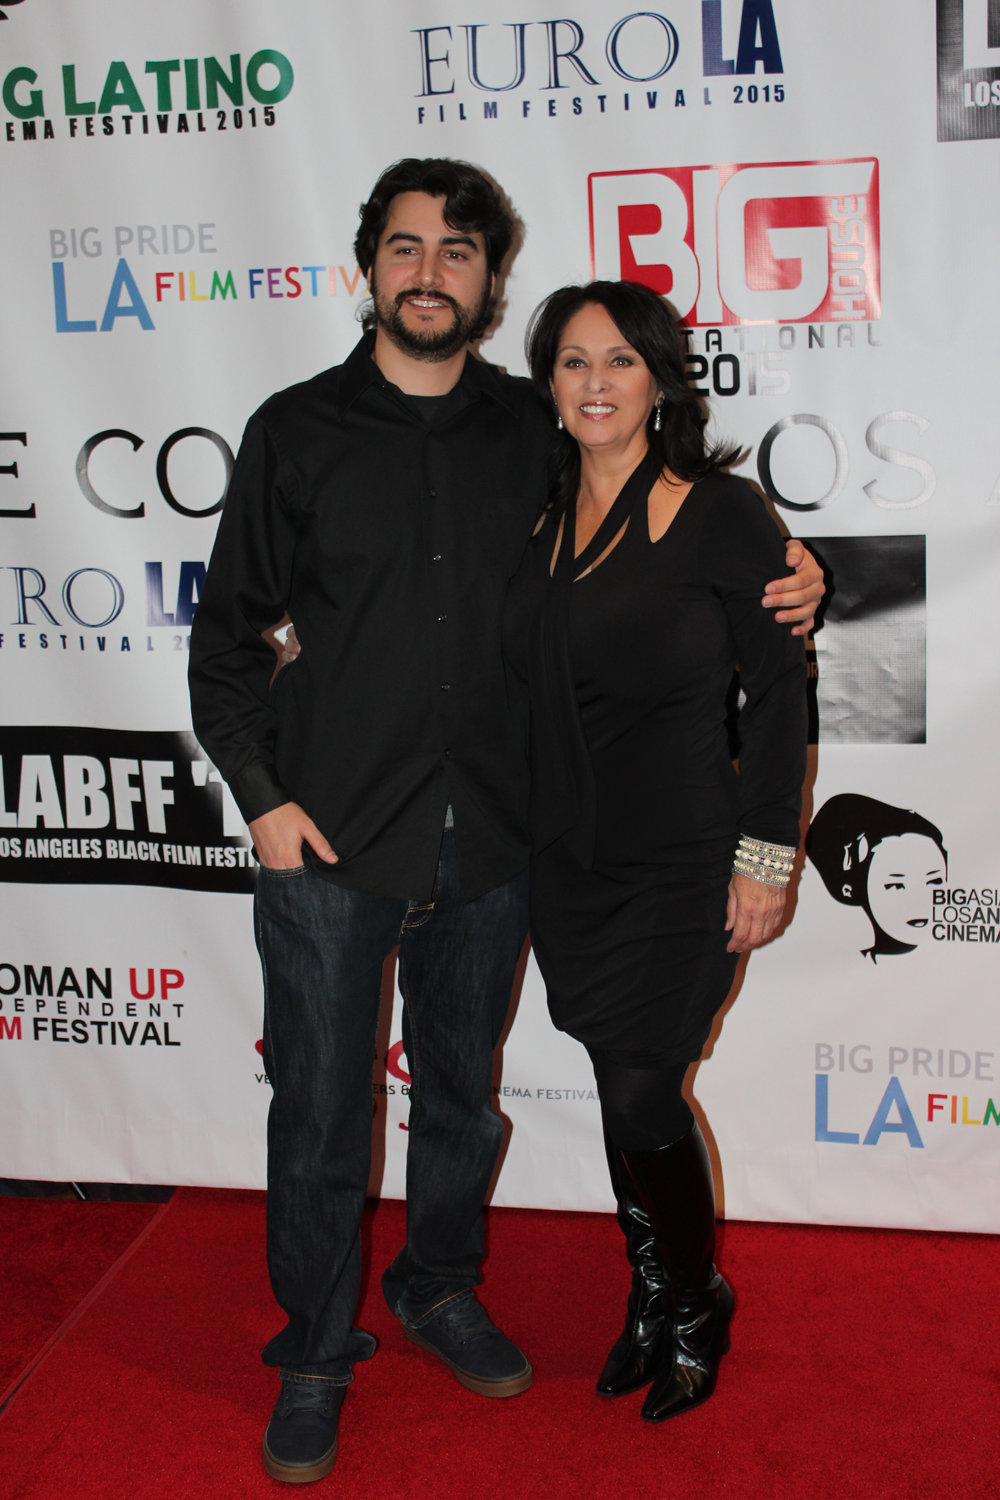 Filmmaker Sean Daniel Bauer and Executive Producer Elizabeth Ann Guevara